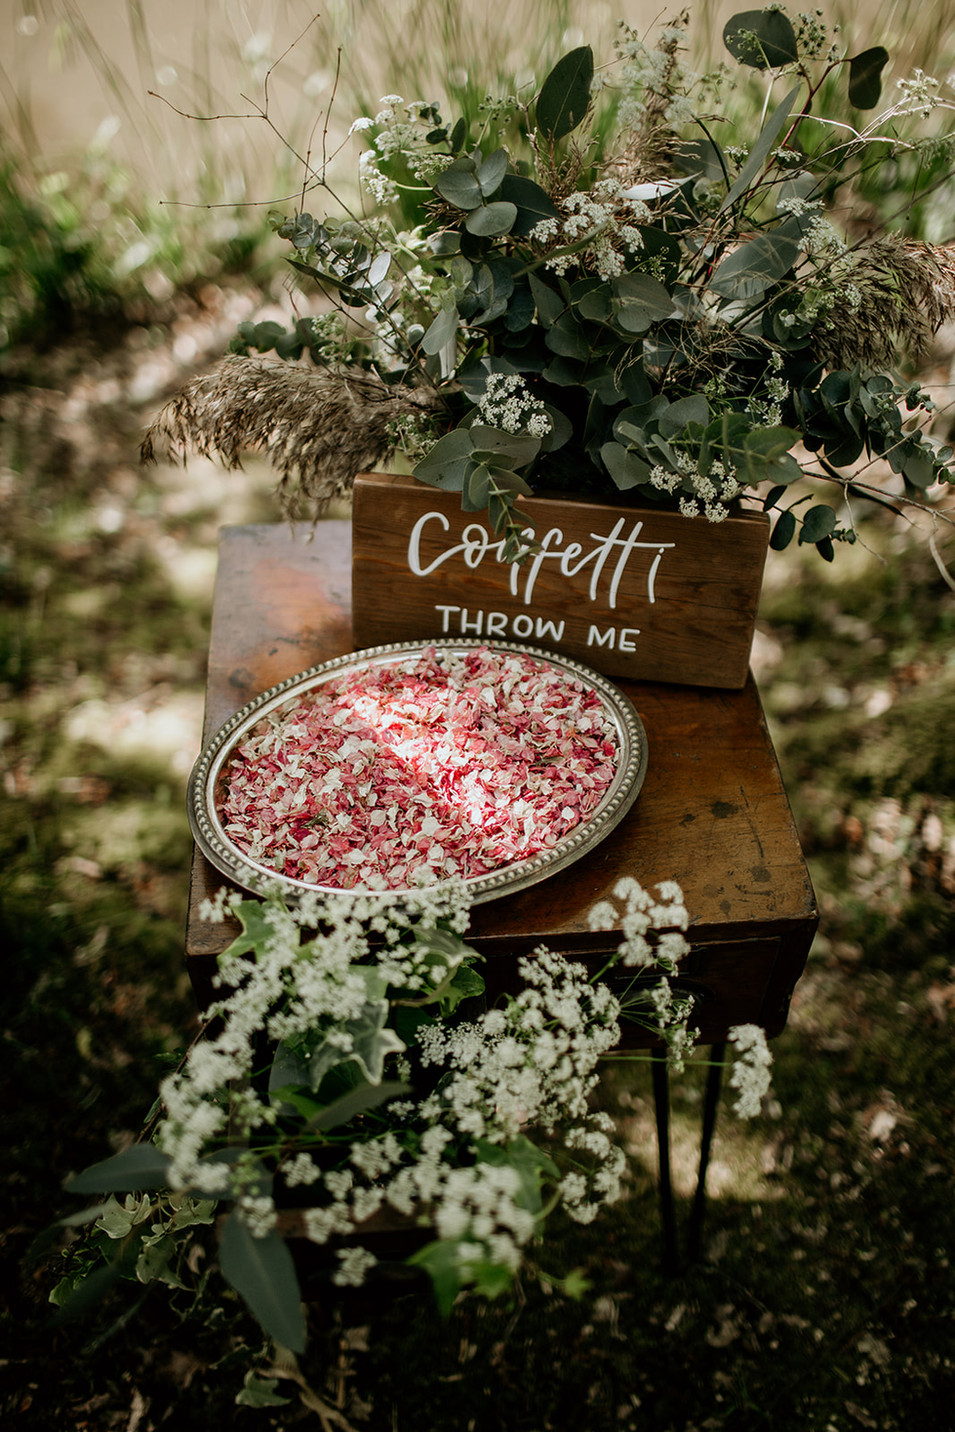 Wickerwood Farm is an eco-friendly venue and has a fantastic natural confetti supplier located right here in the UK.  More details available upon request.   'Confetti throw me' sign available for hire.